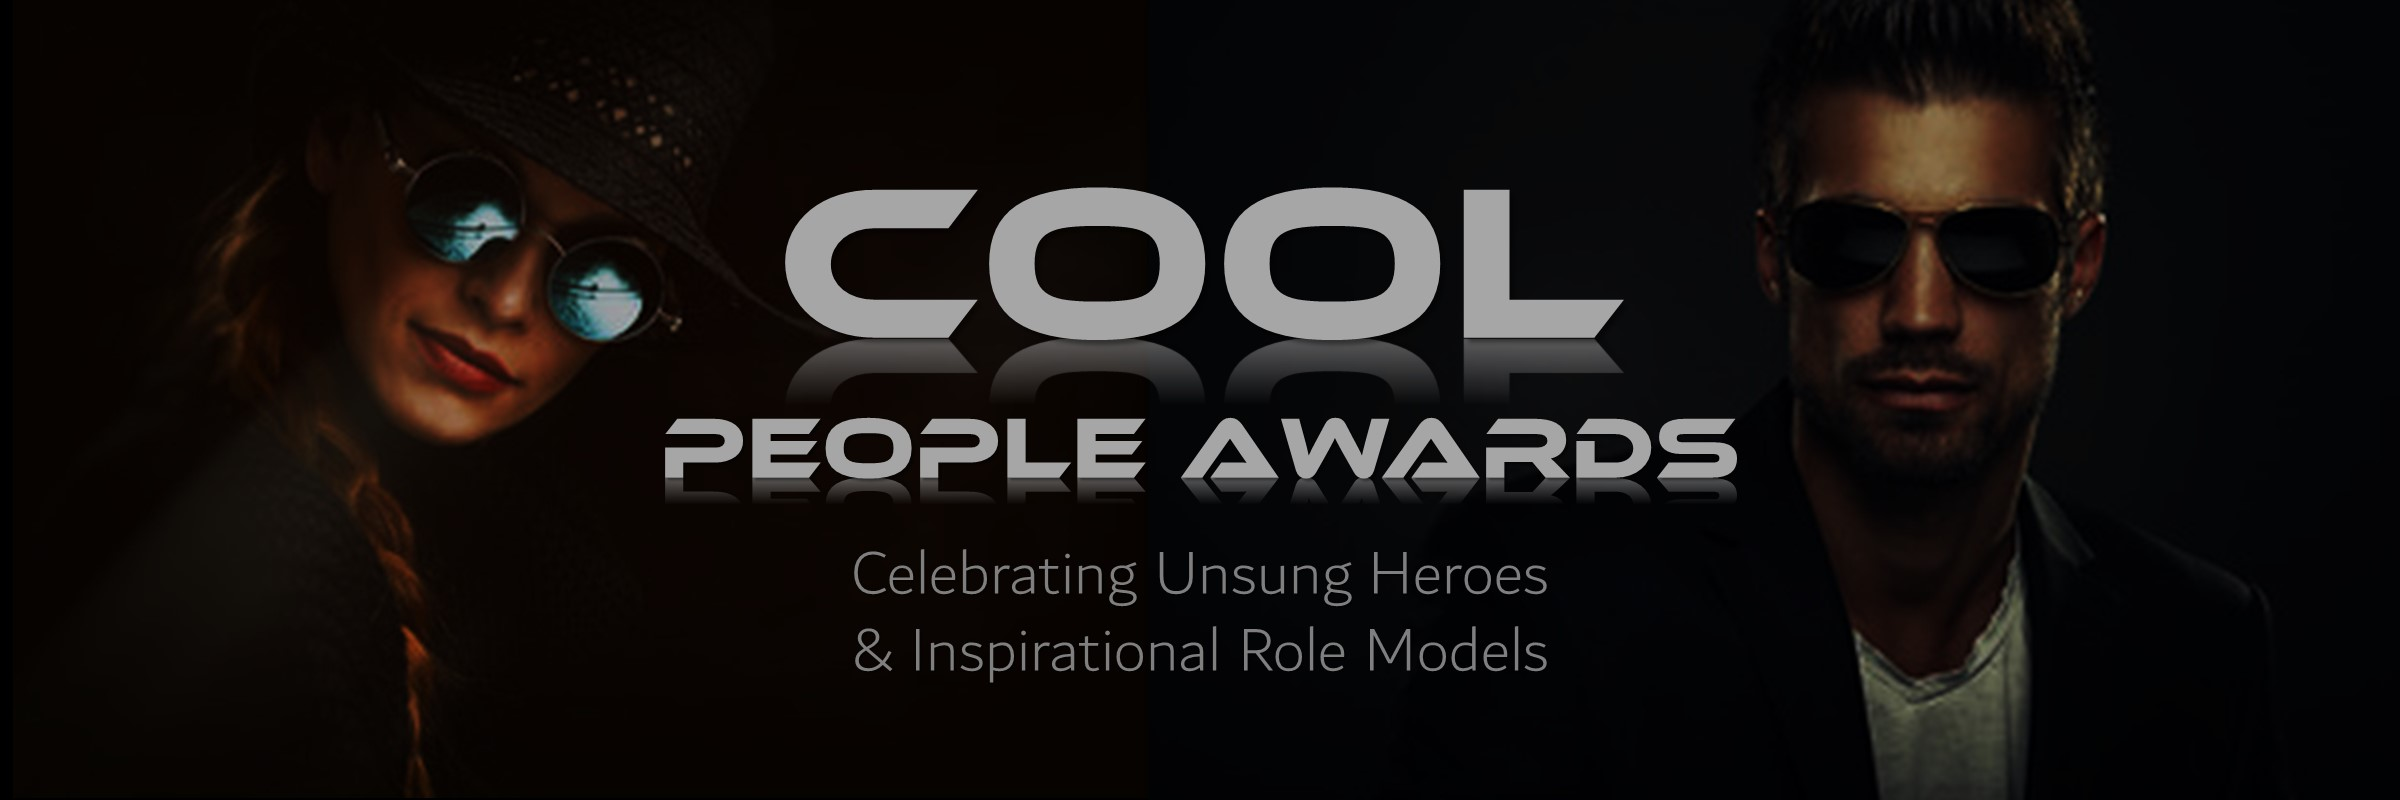 Cool People Awards_visual